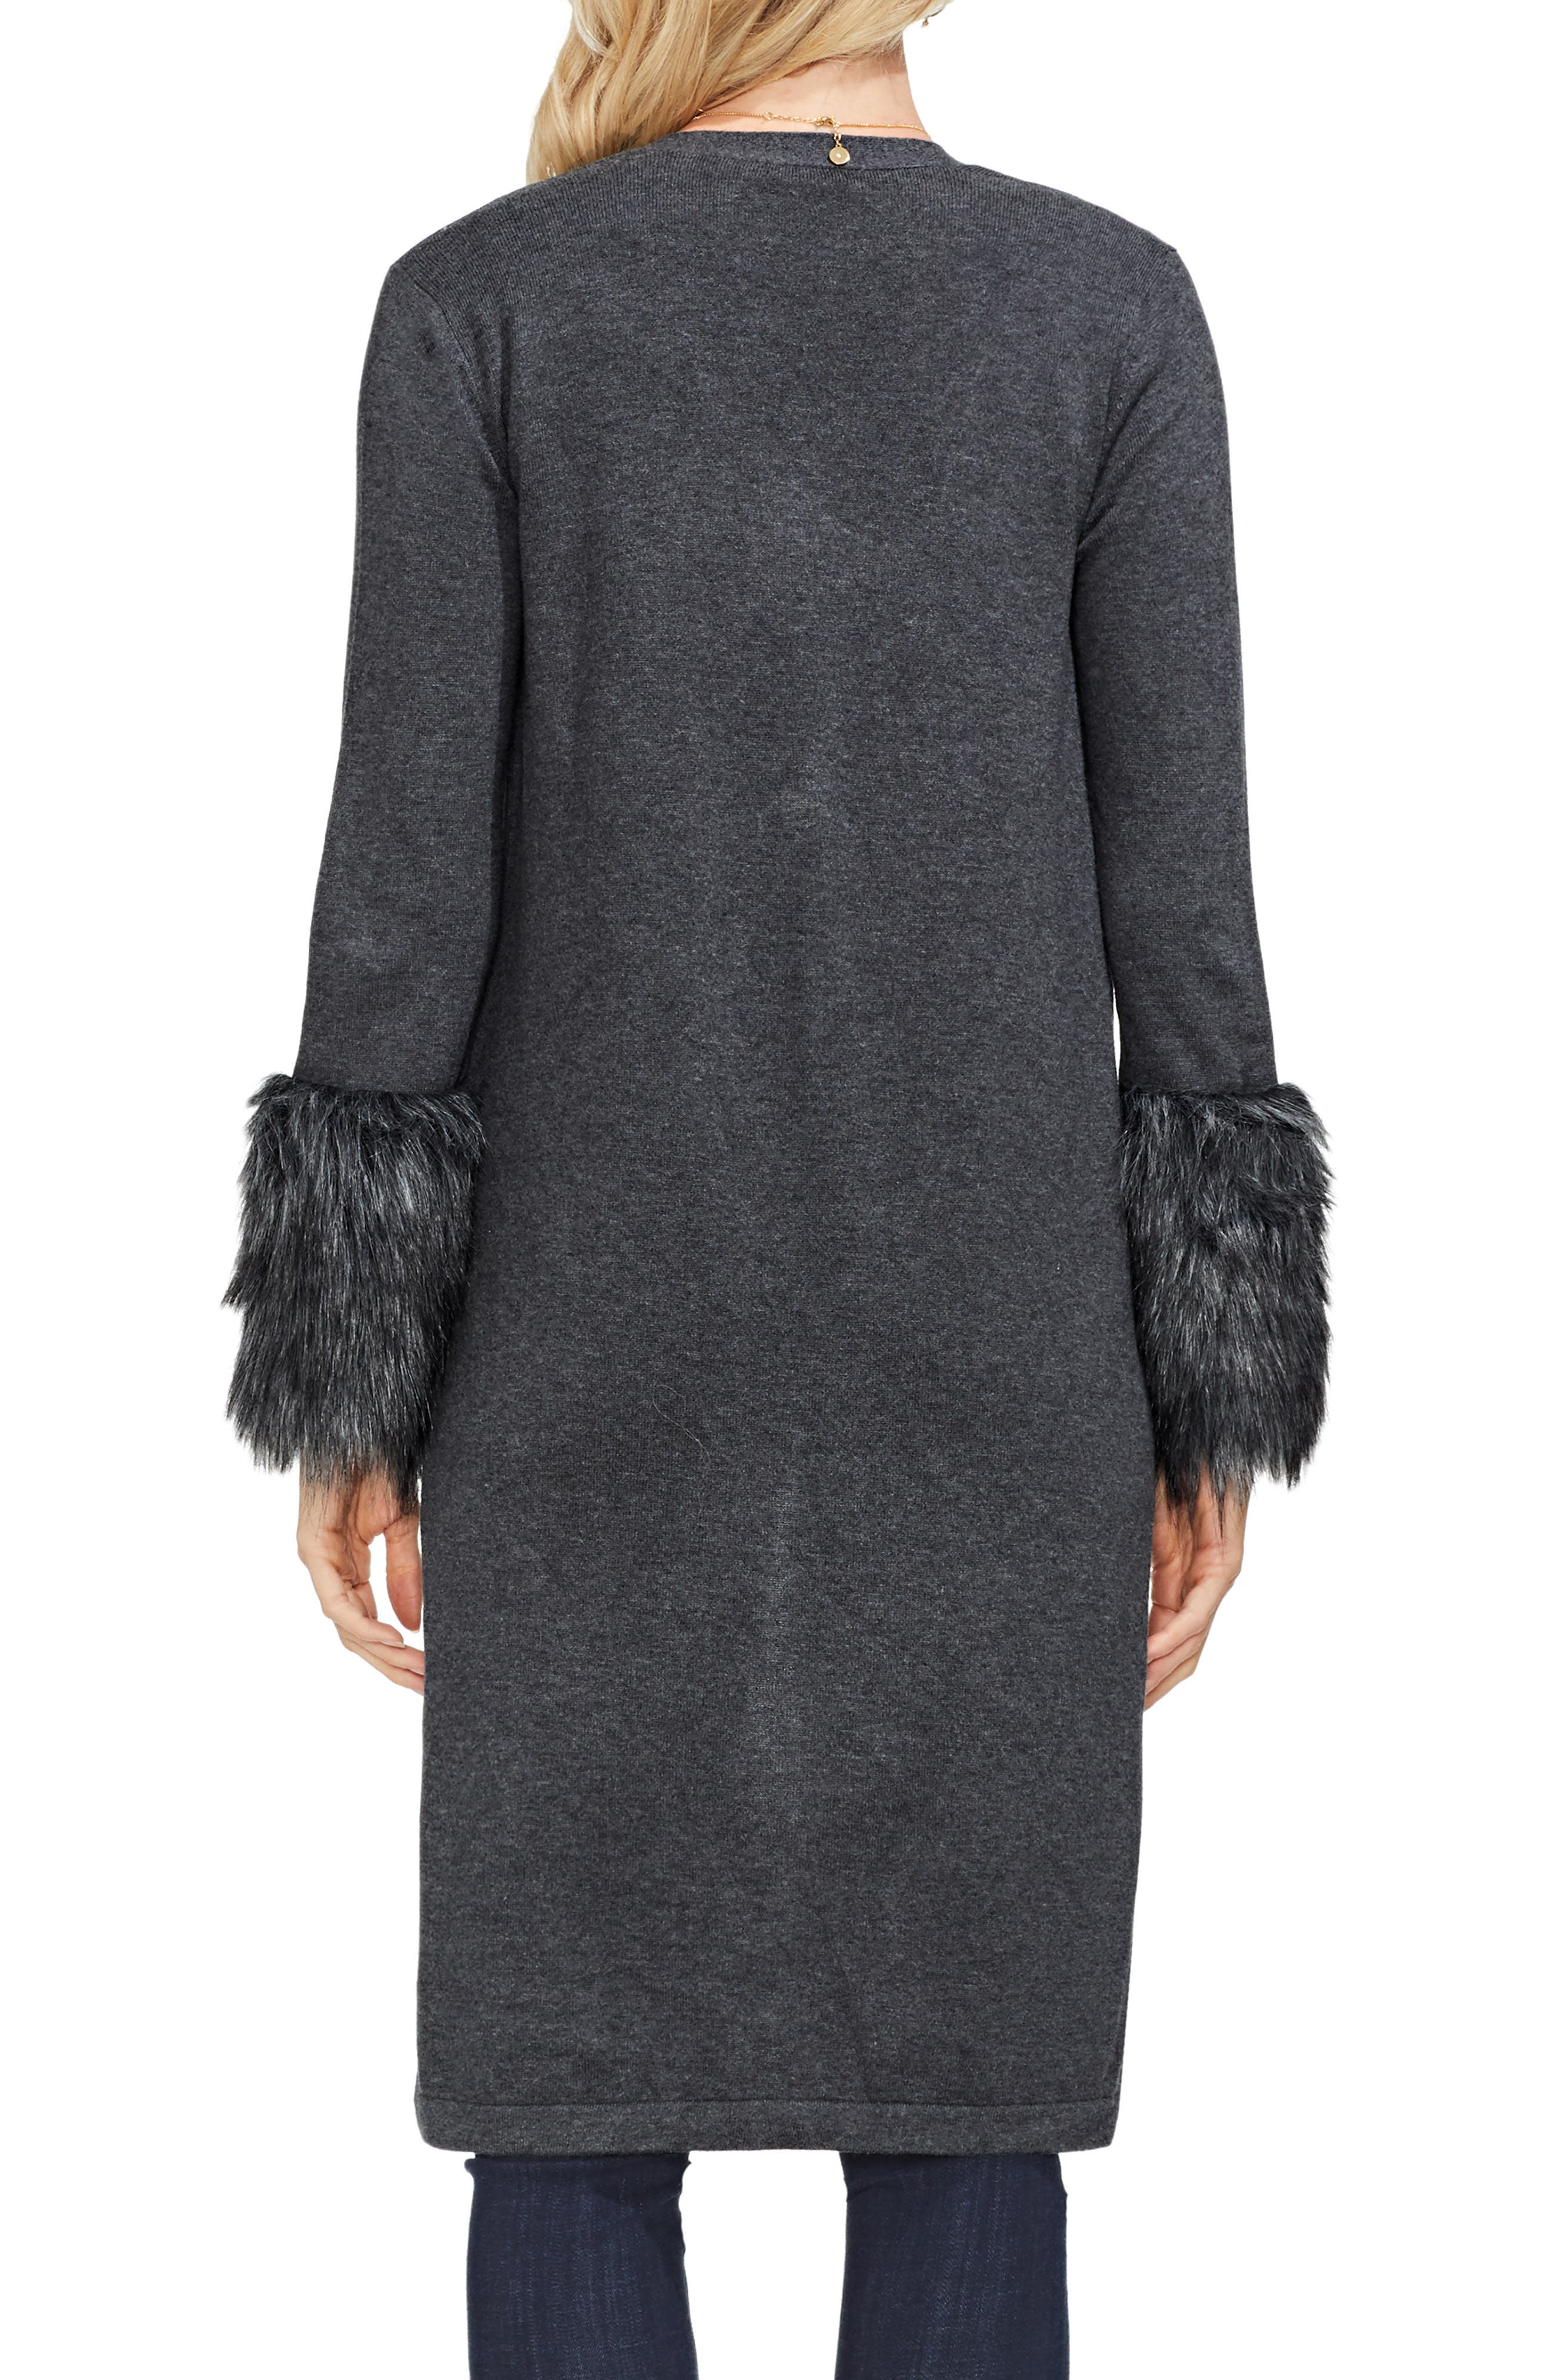 Faux Fur Cuff Cardigan,                             Alternate thumbnail 2, color,                             MED HEATHER GREY